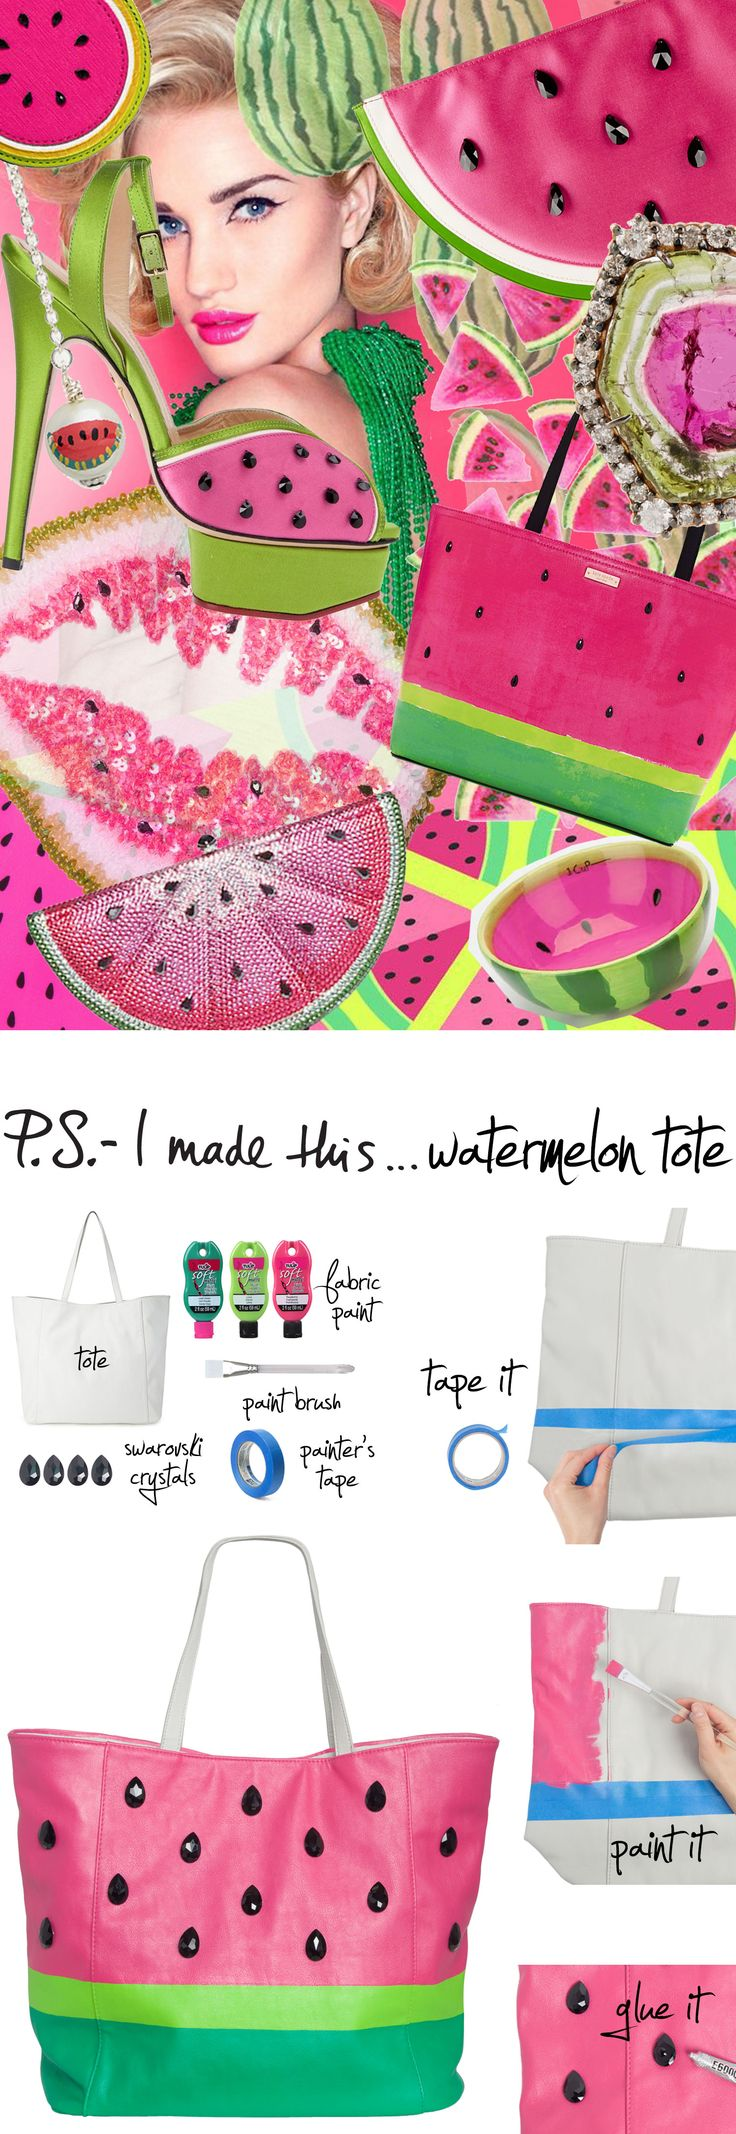 P.S.- I made this...Watermelon Tote #psimadethis #diy